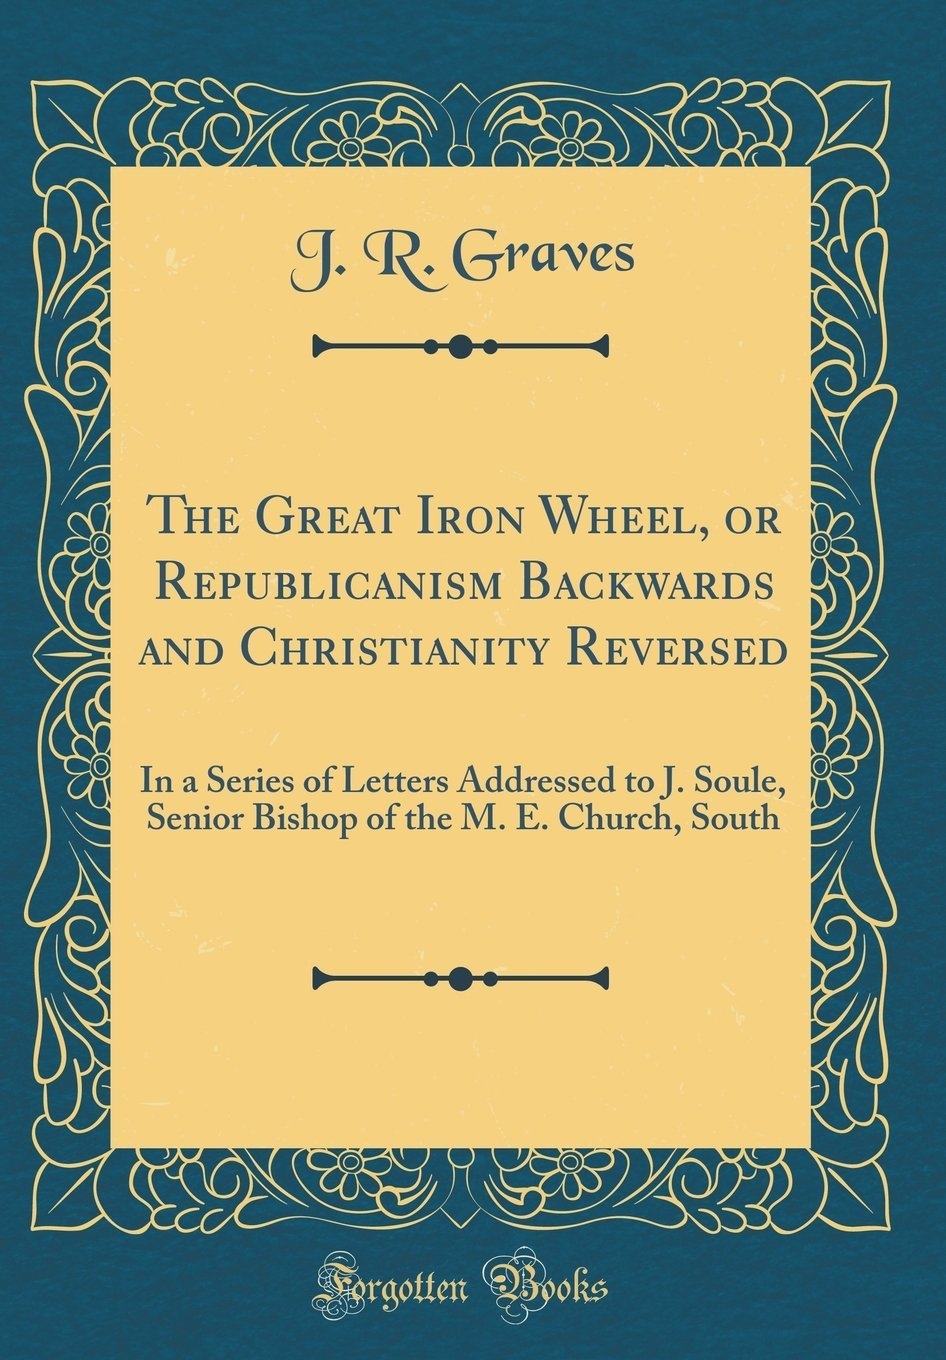 The Great Iron Wheel, or Republicanism Backwards and Christianity Reversed: In a Series of Letters Addressed to J. Soule, Senior Bishop of the M. E. Church, South (Classic Reprint) PDF